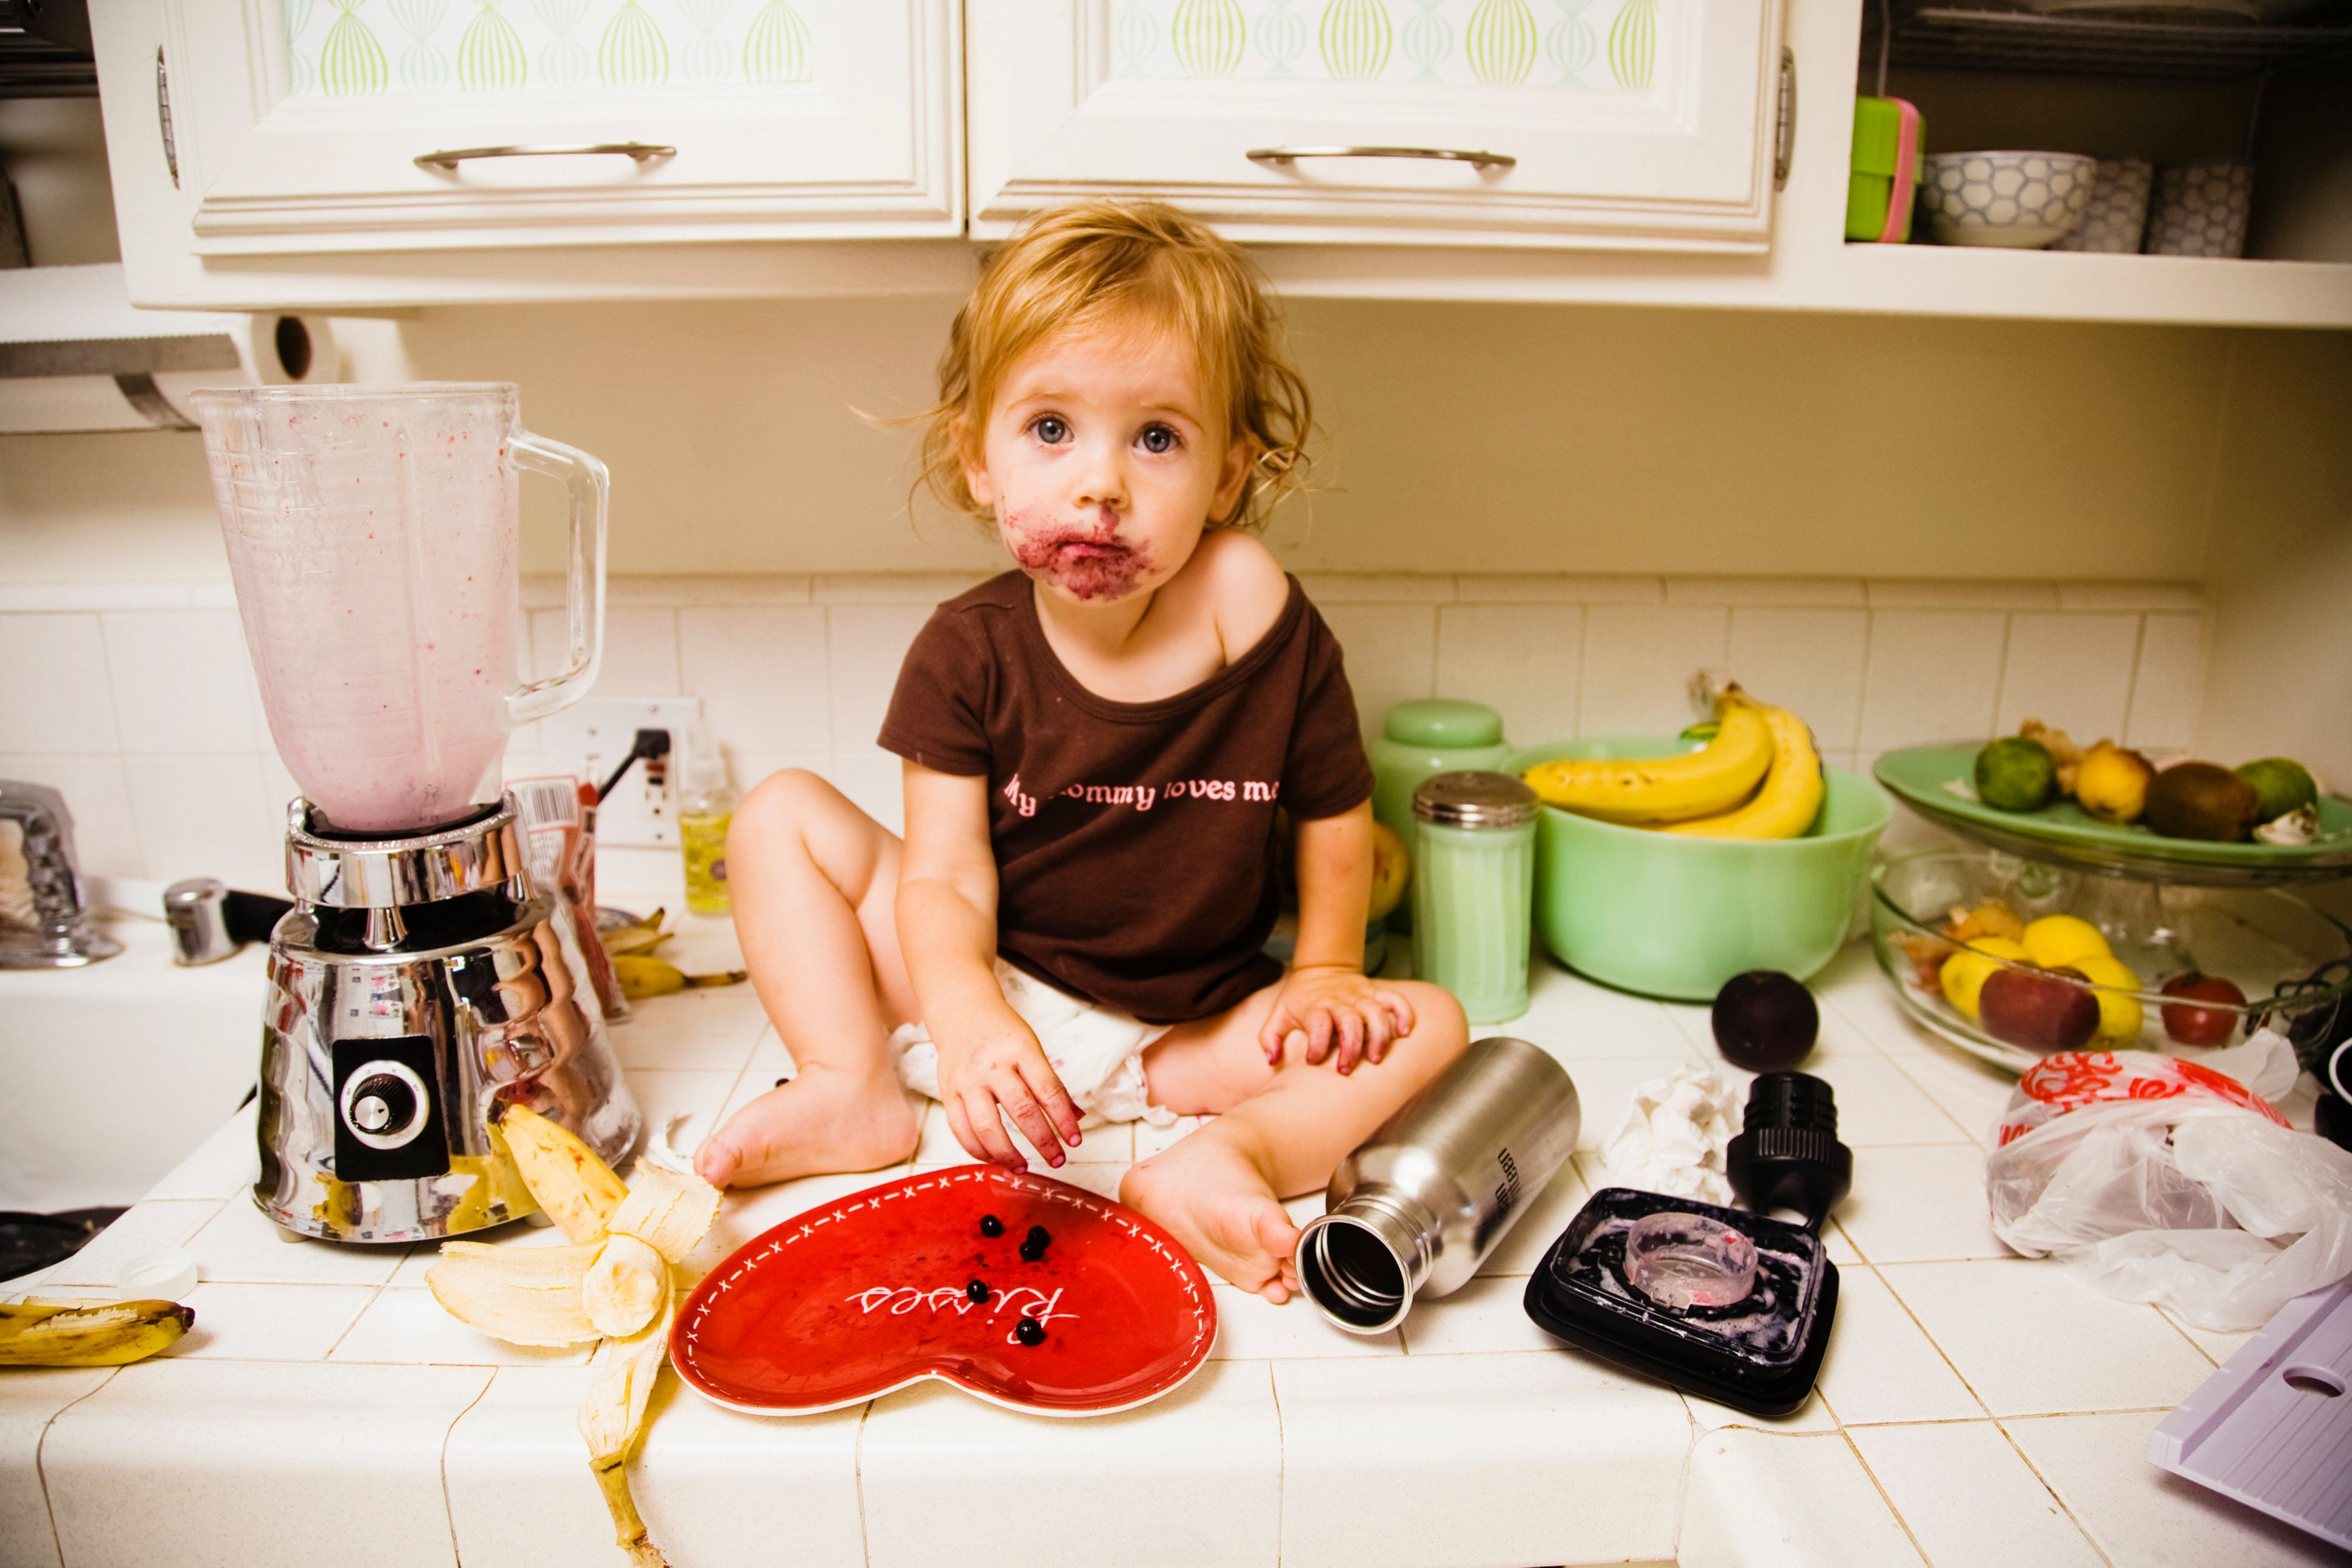 Messy child on kitchen counter